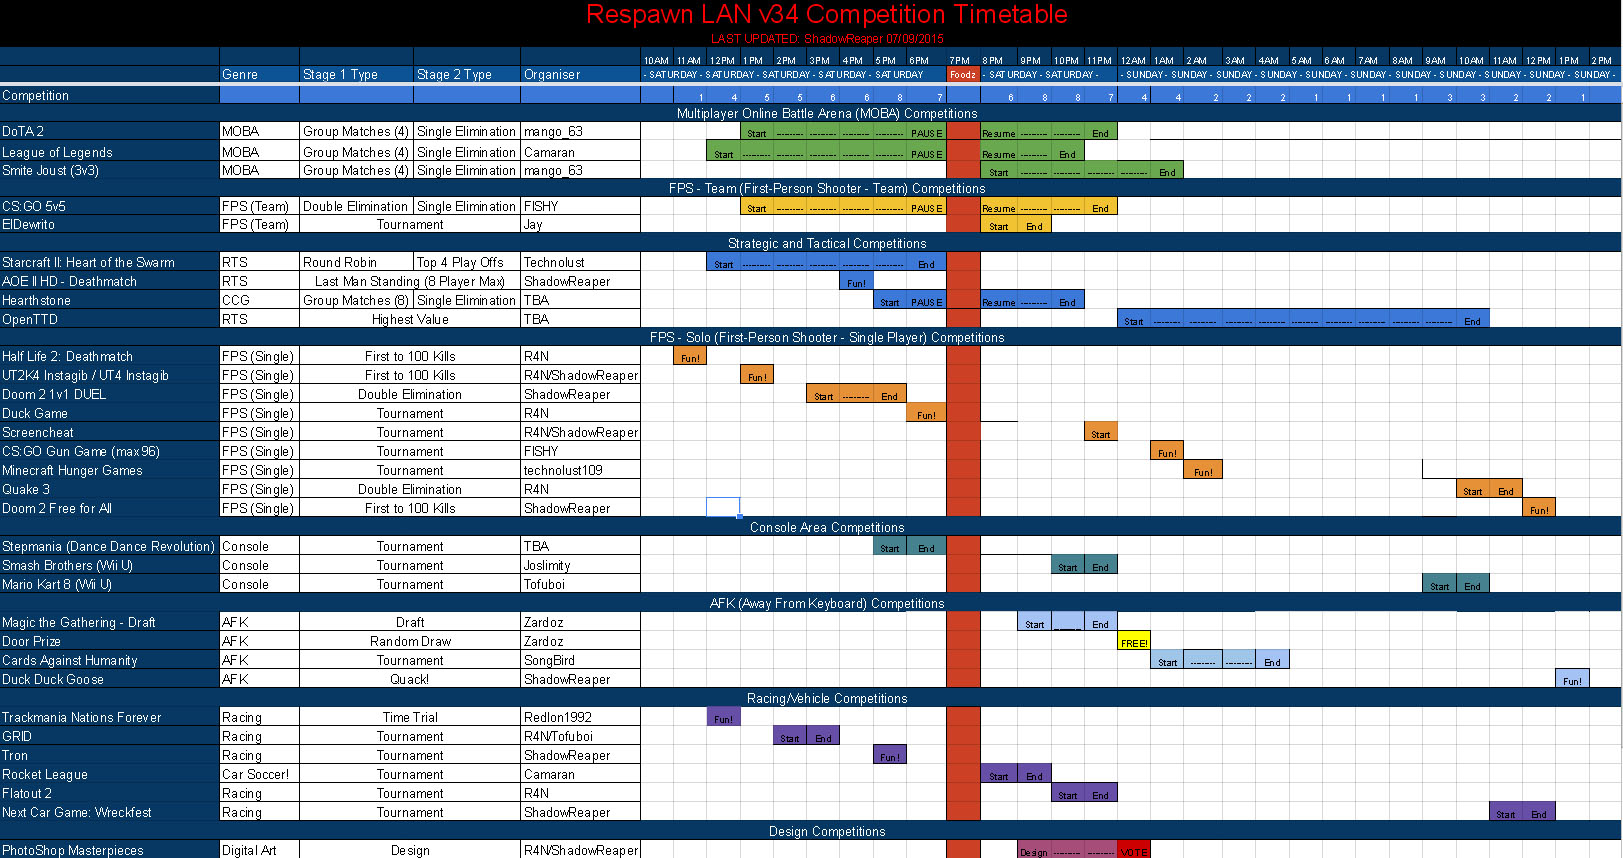 Respawn LAN v34 tournament timetable image